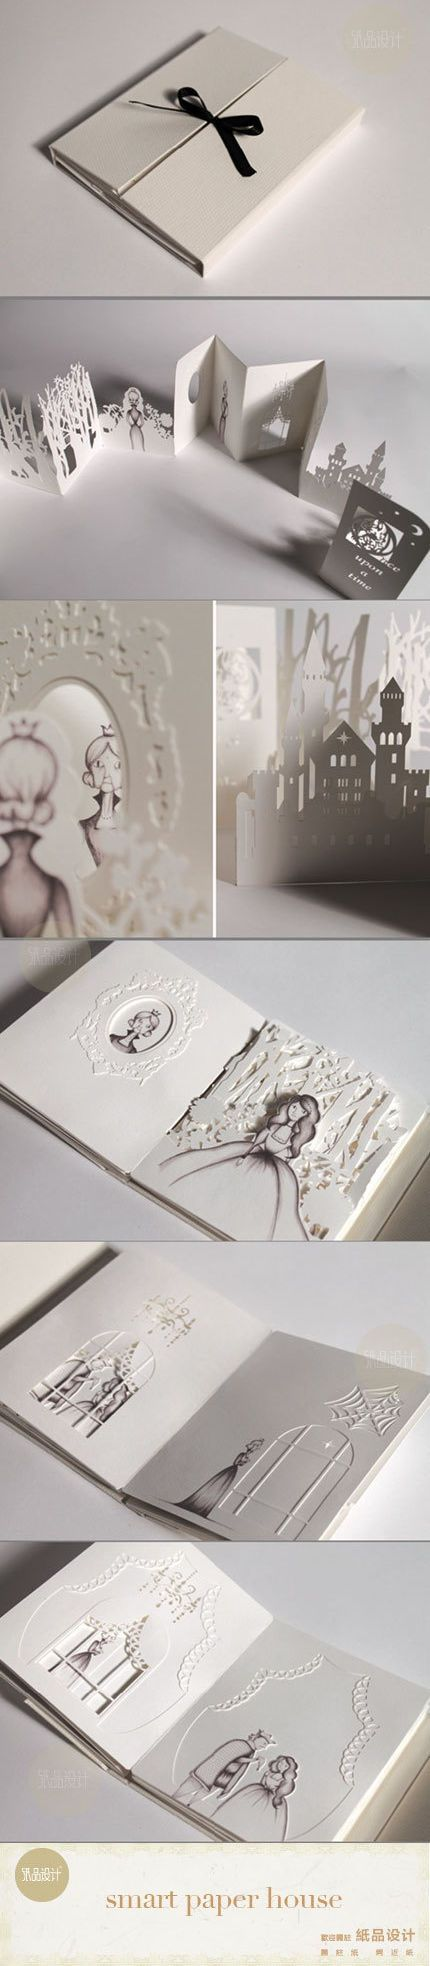 3d invite story book of the seasons that fuses a picture with the image of the bottle at the end or the bespoke glass